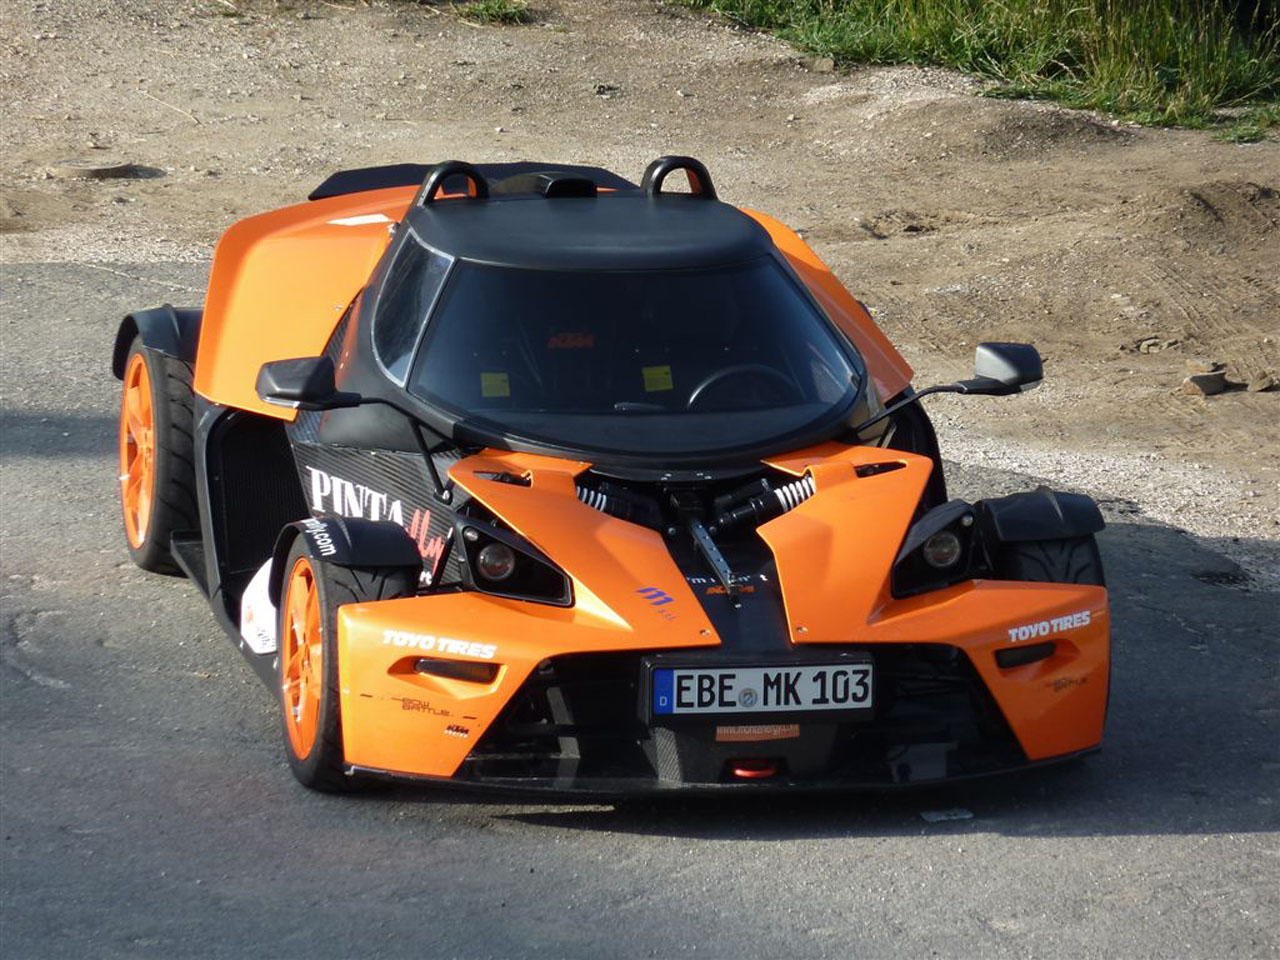 ktm x bow monte carlo by montenergy photos. Black Bedroom Furniture Sets. Home Design Ideas